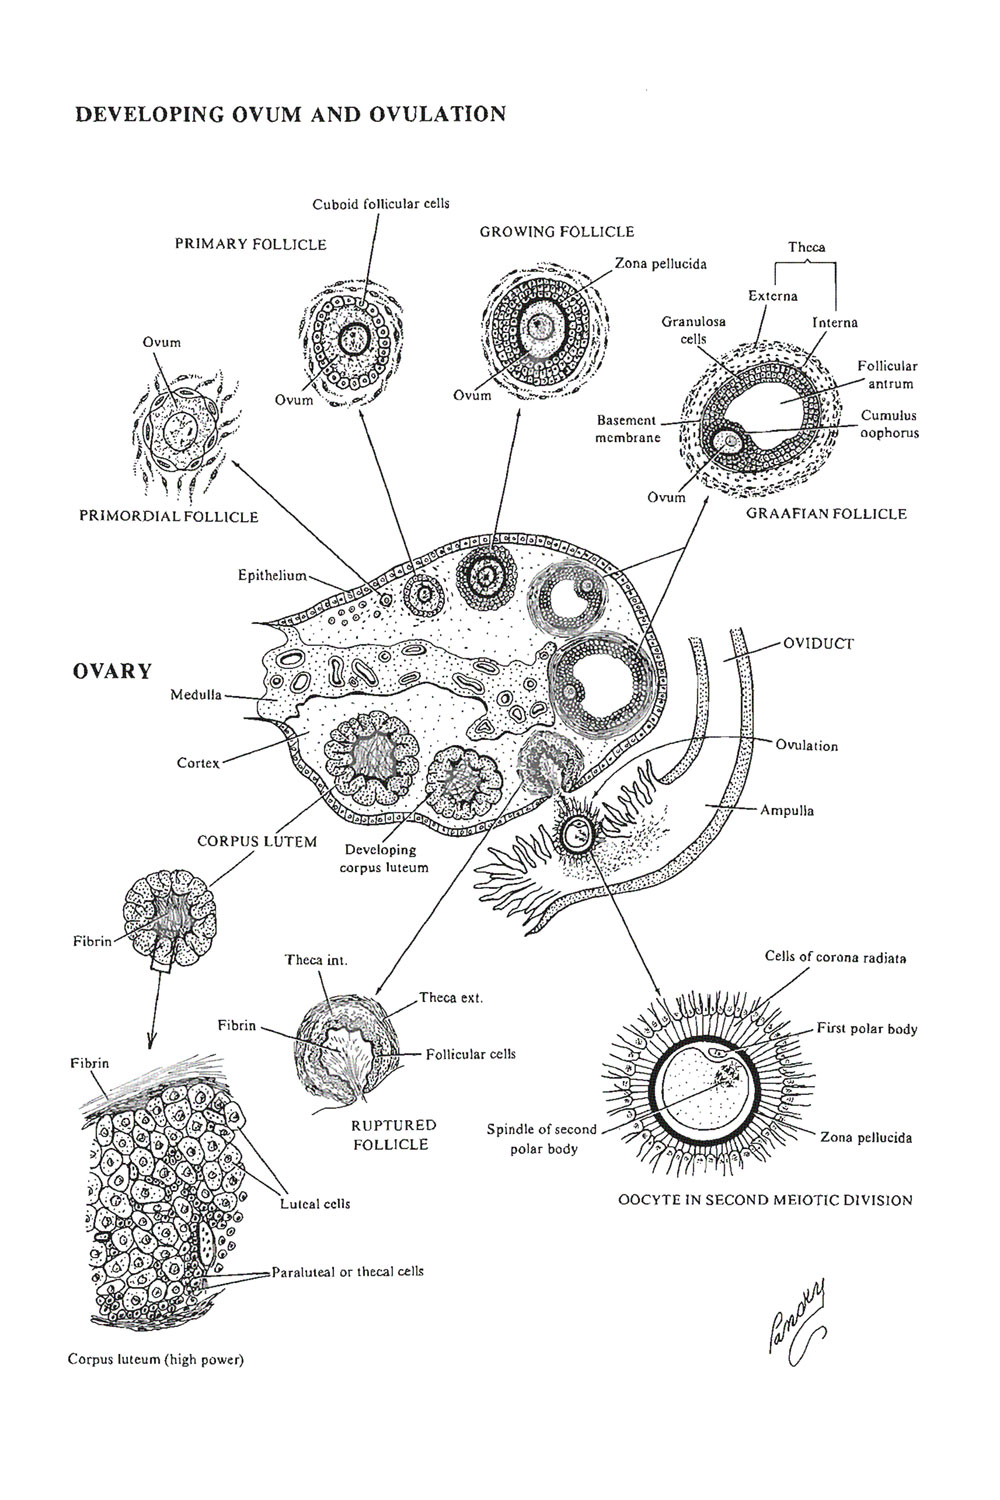 reproductive cycles:  the ovarian cycle and ovulation: image #1